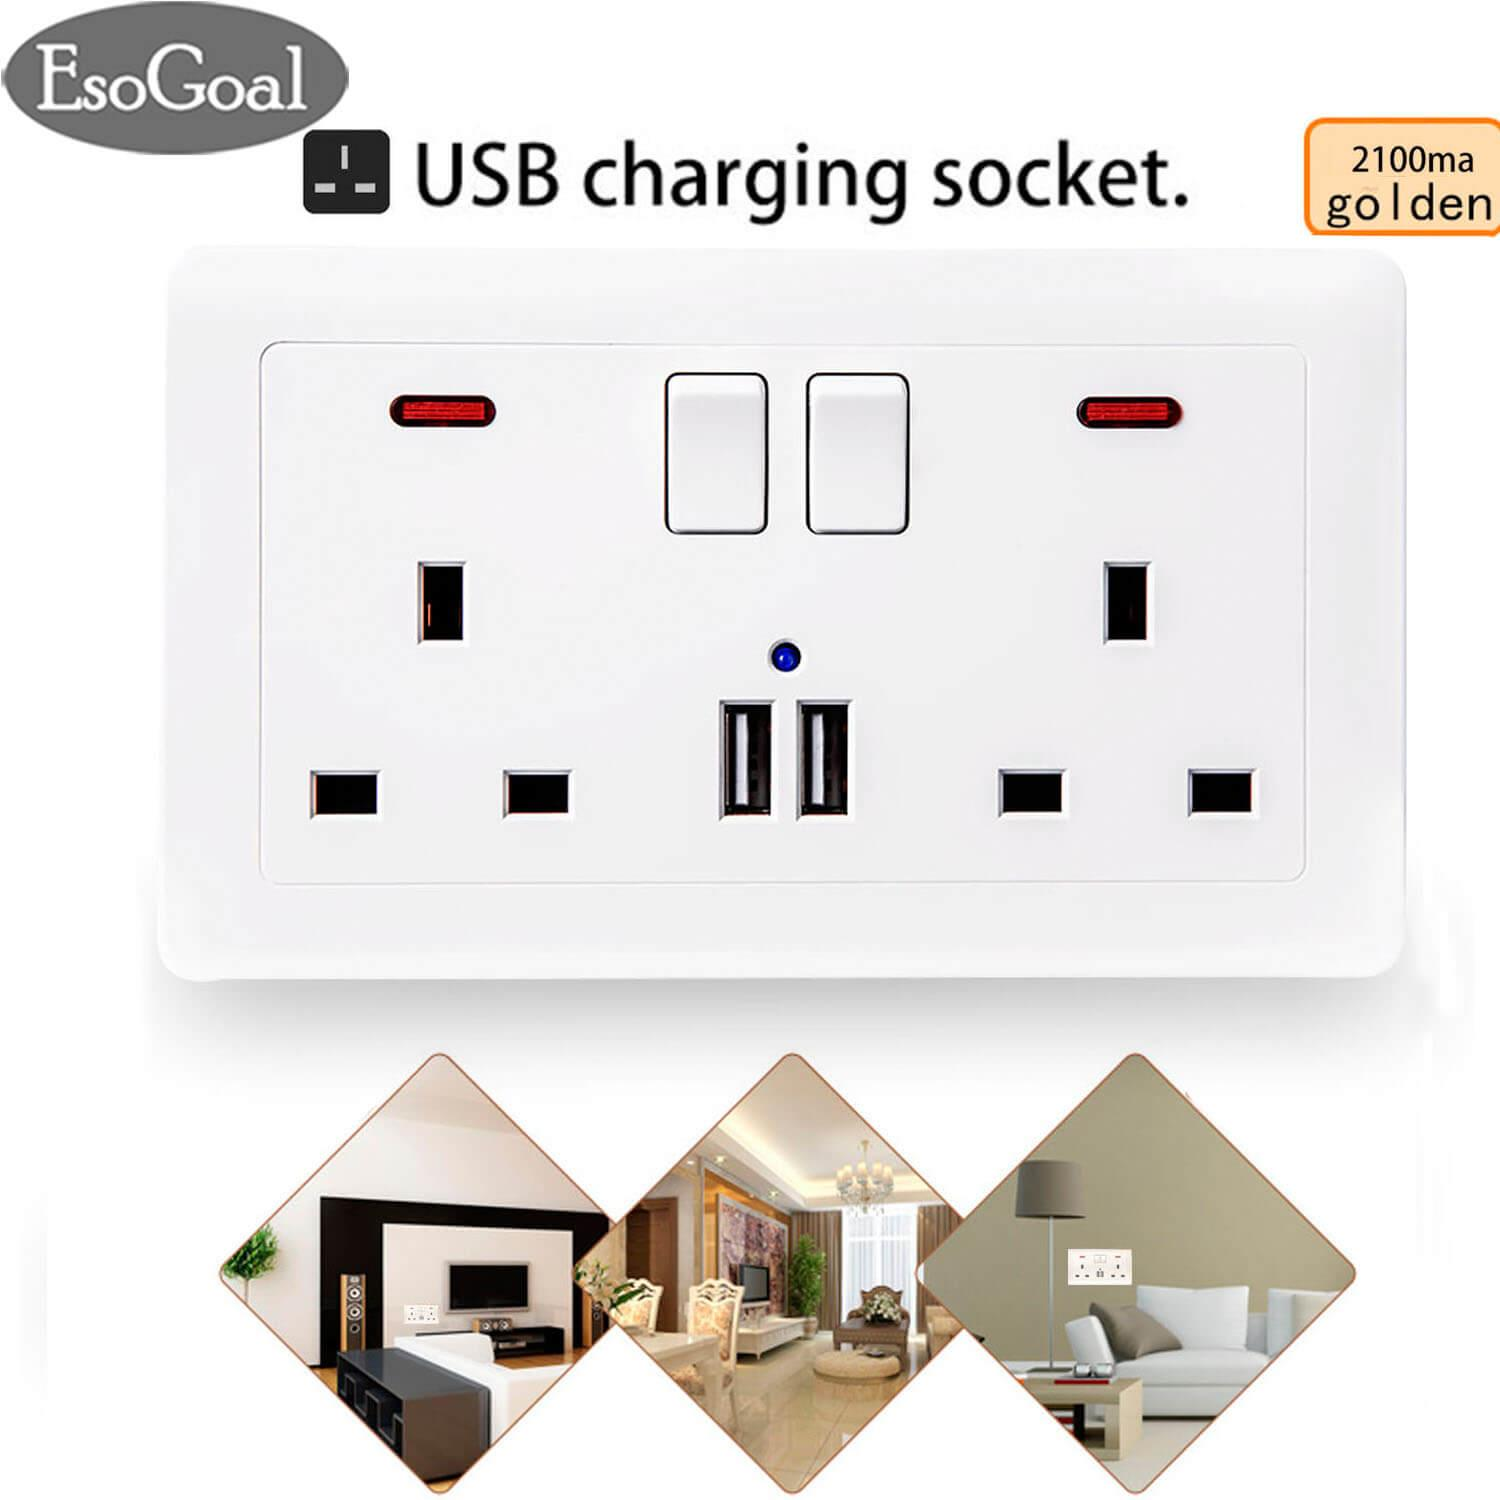 Esogoal Usb Wall Socket Charger Double Wall Switched Socket Wall Plug Socket With 2 X Usb Charger Ports By Esogoal.